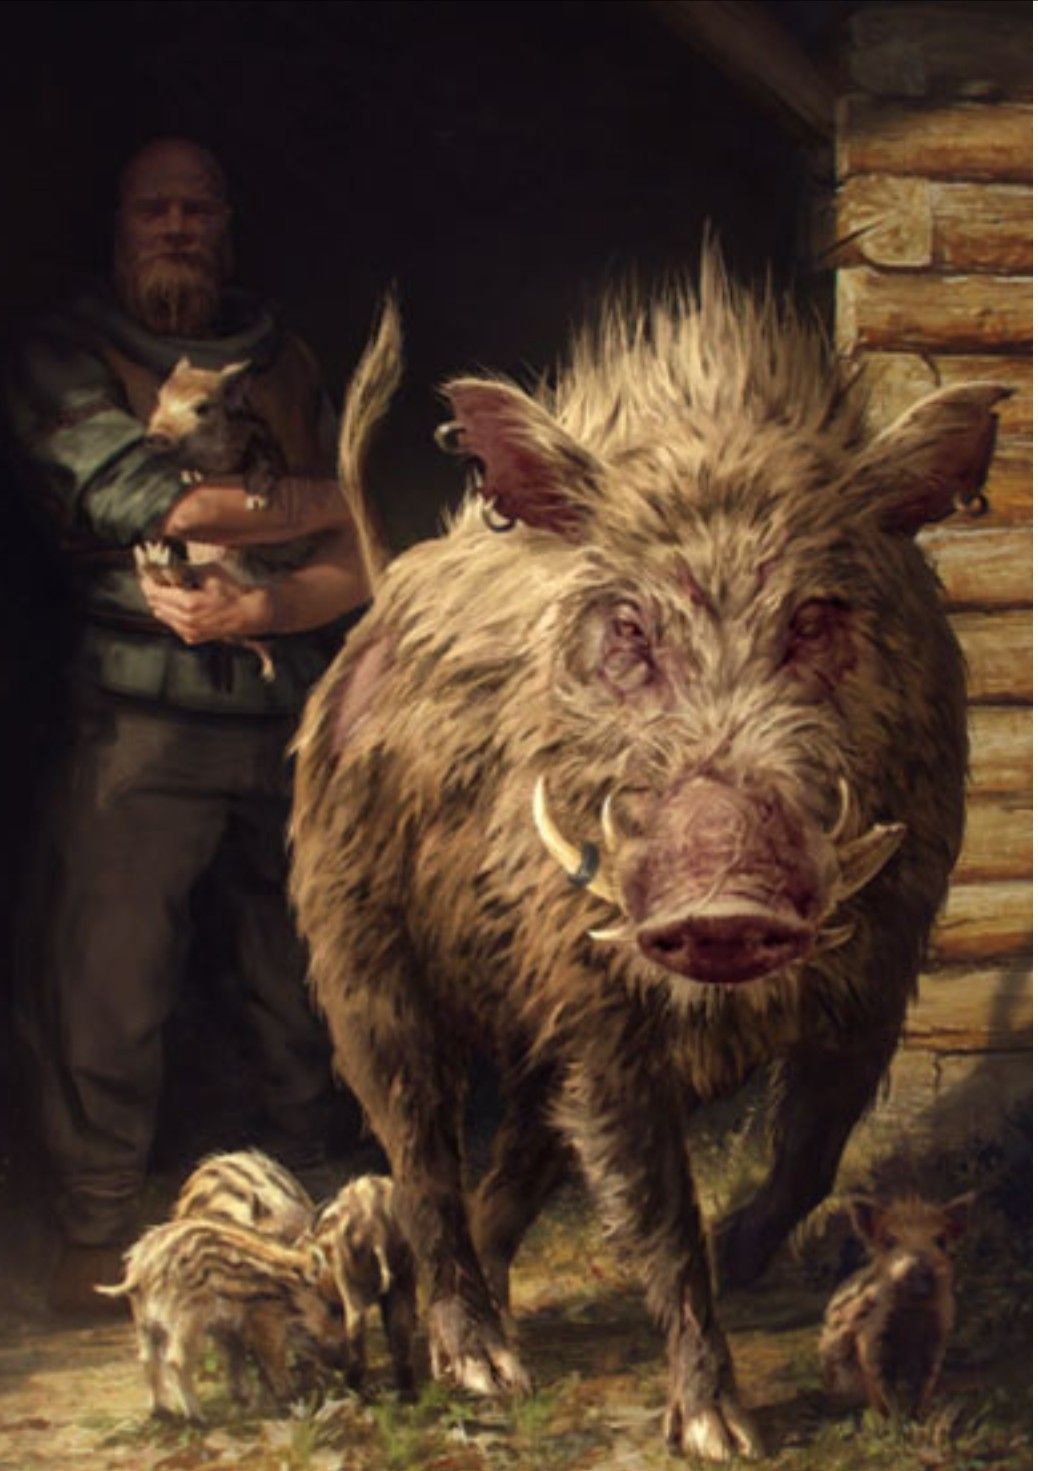 The Witcher Giant Boar Gwent Card Skellige Witcher Art In 2019